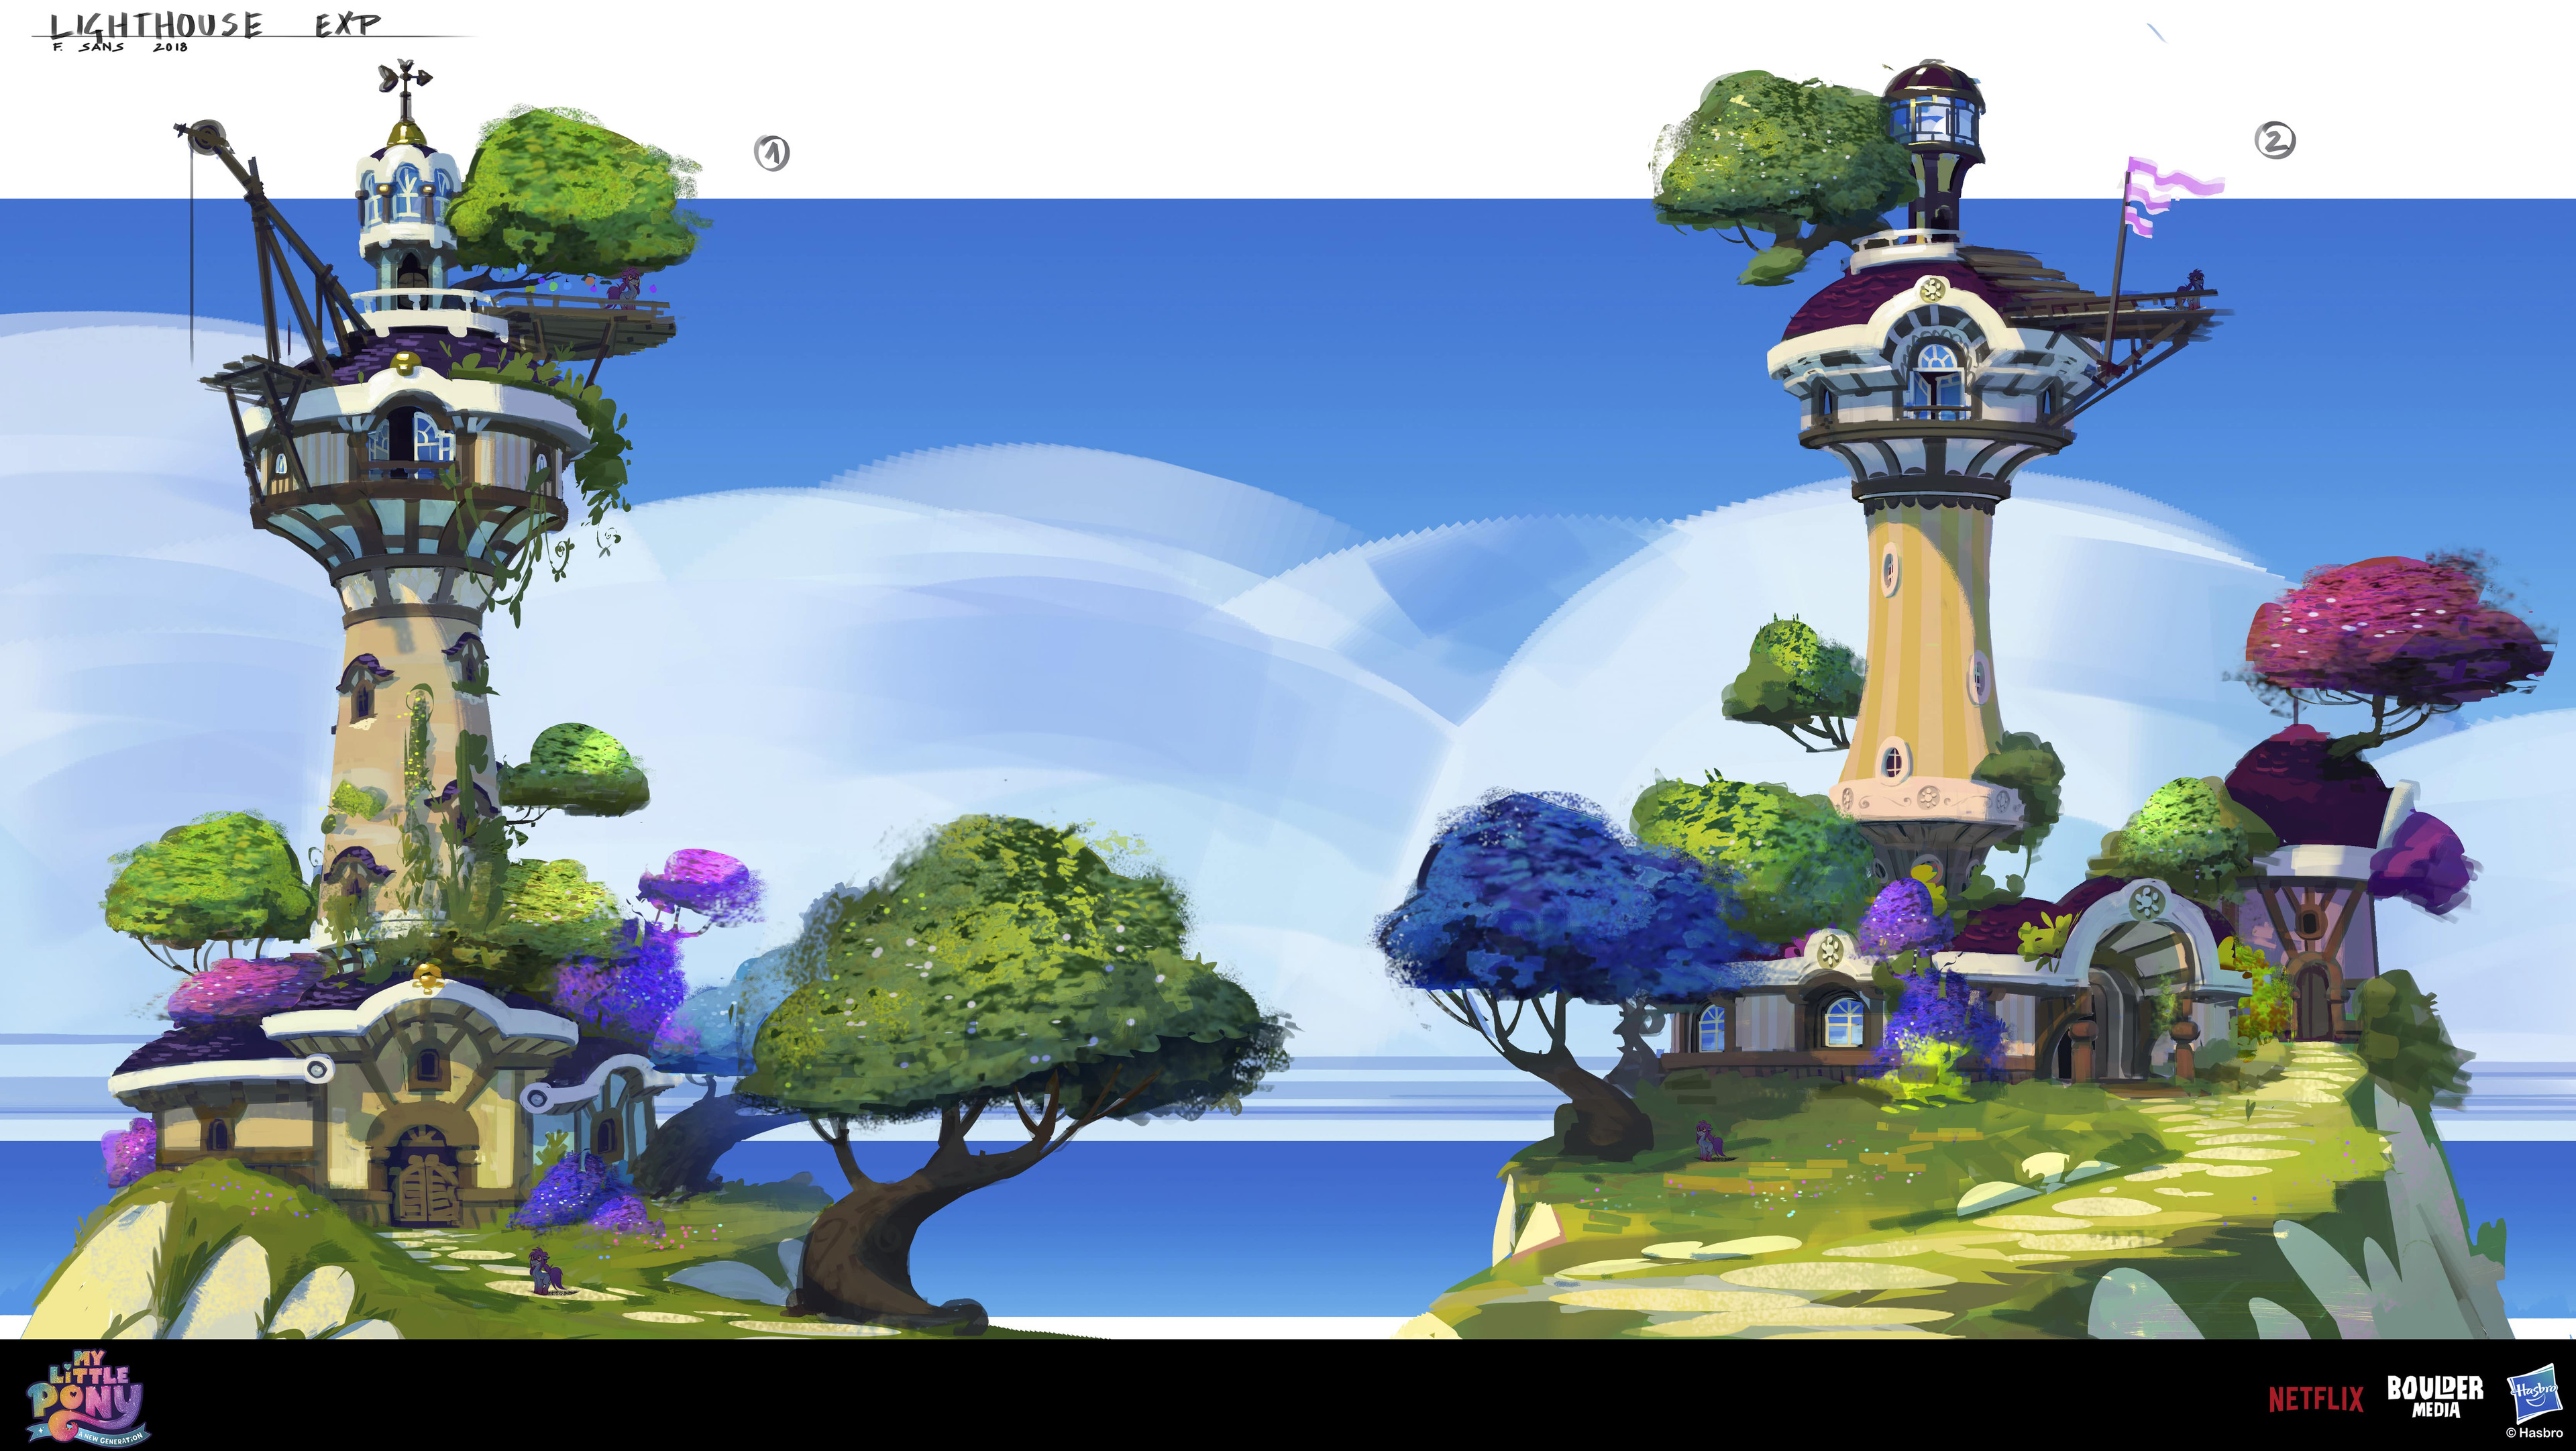 More early lighthouse design